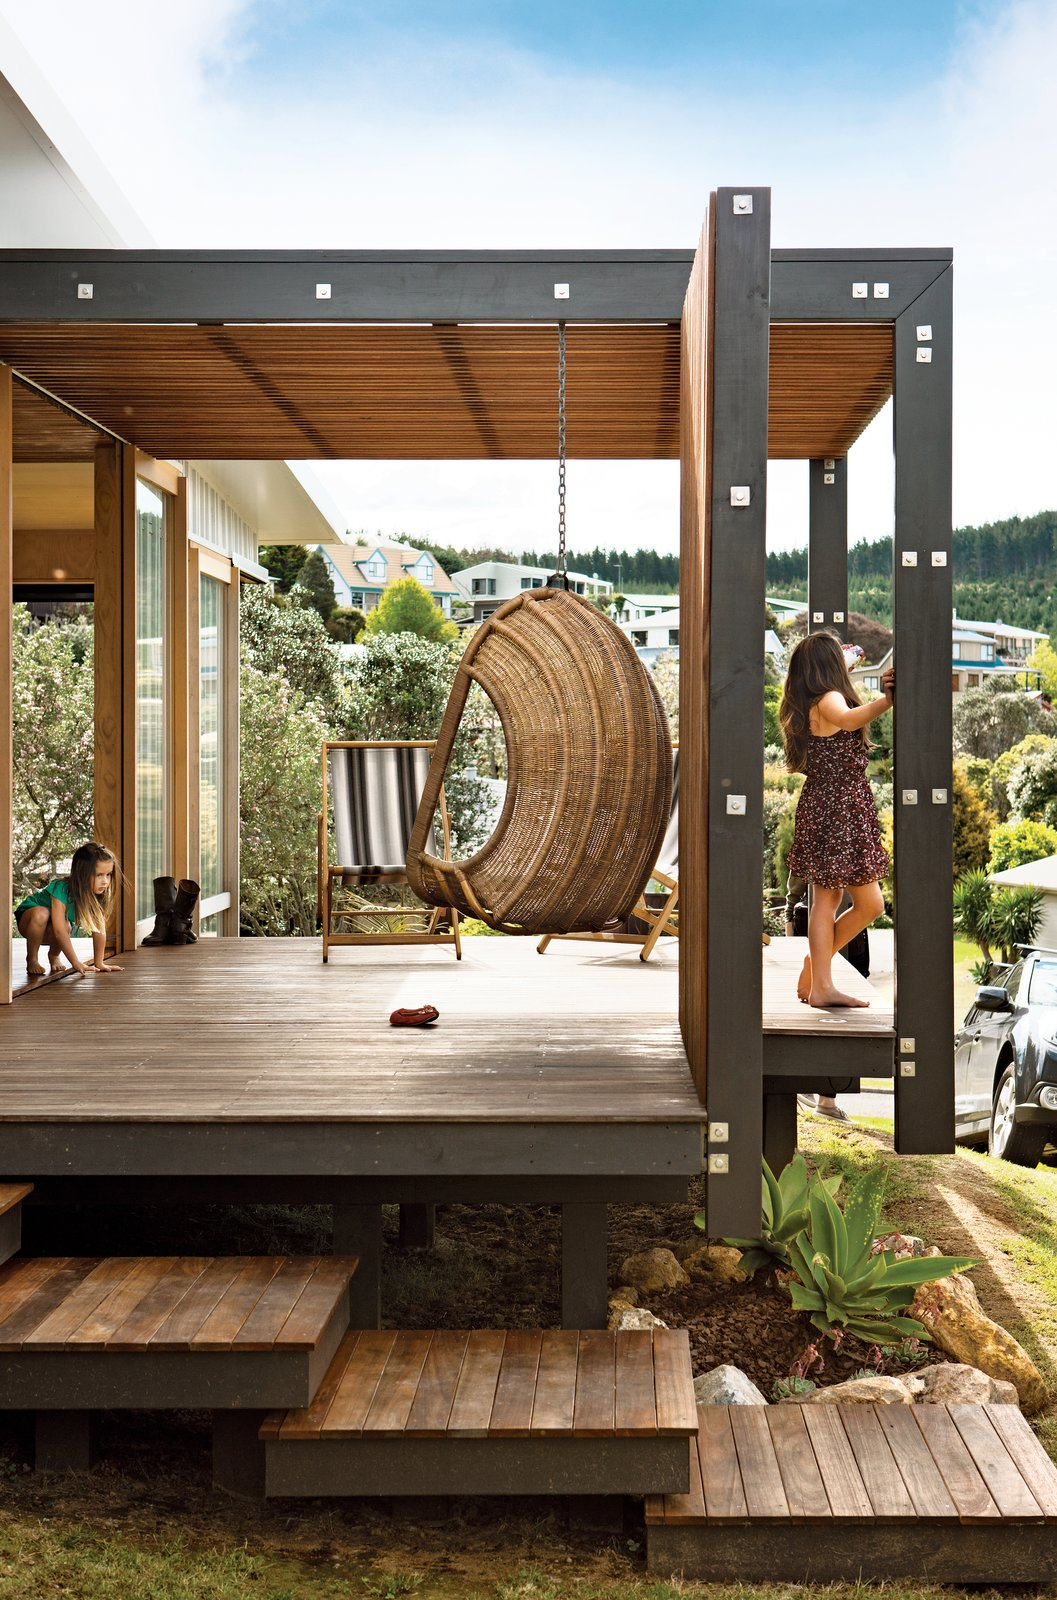 Students Pass Their Class by Building a House in New Zealand